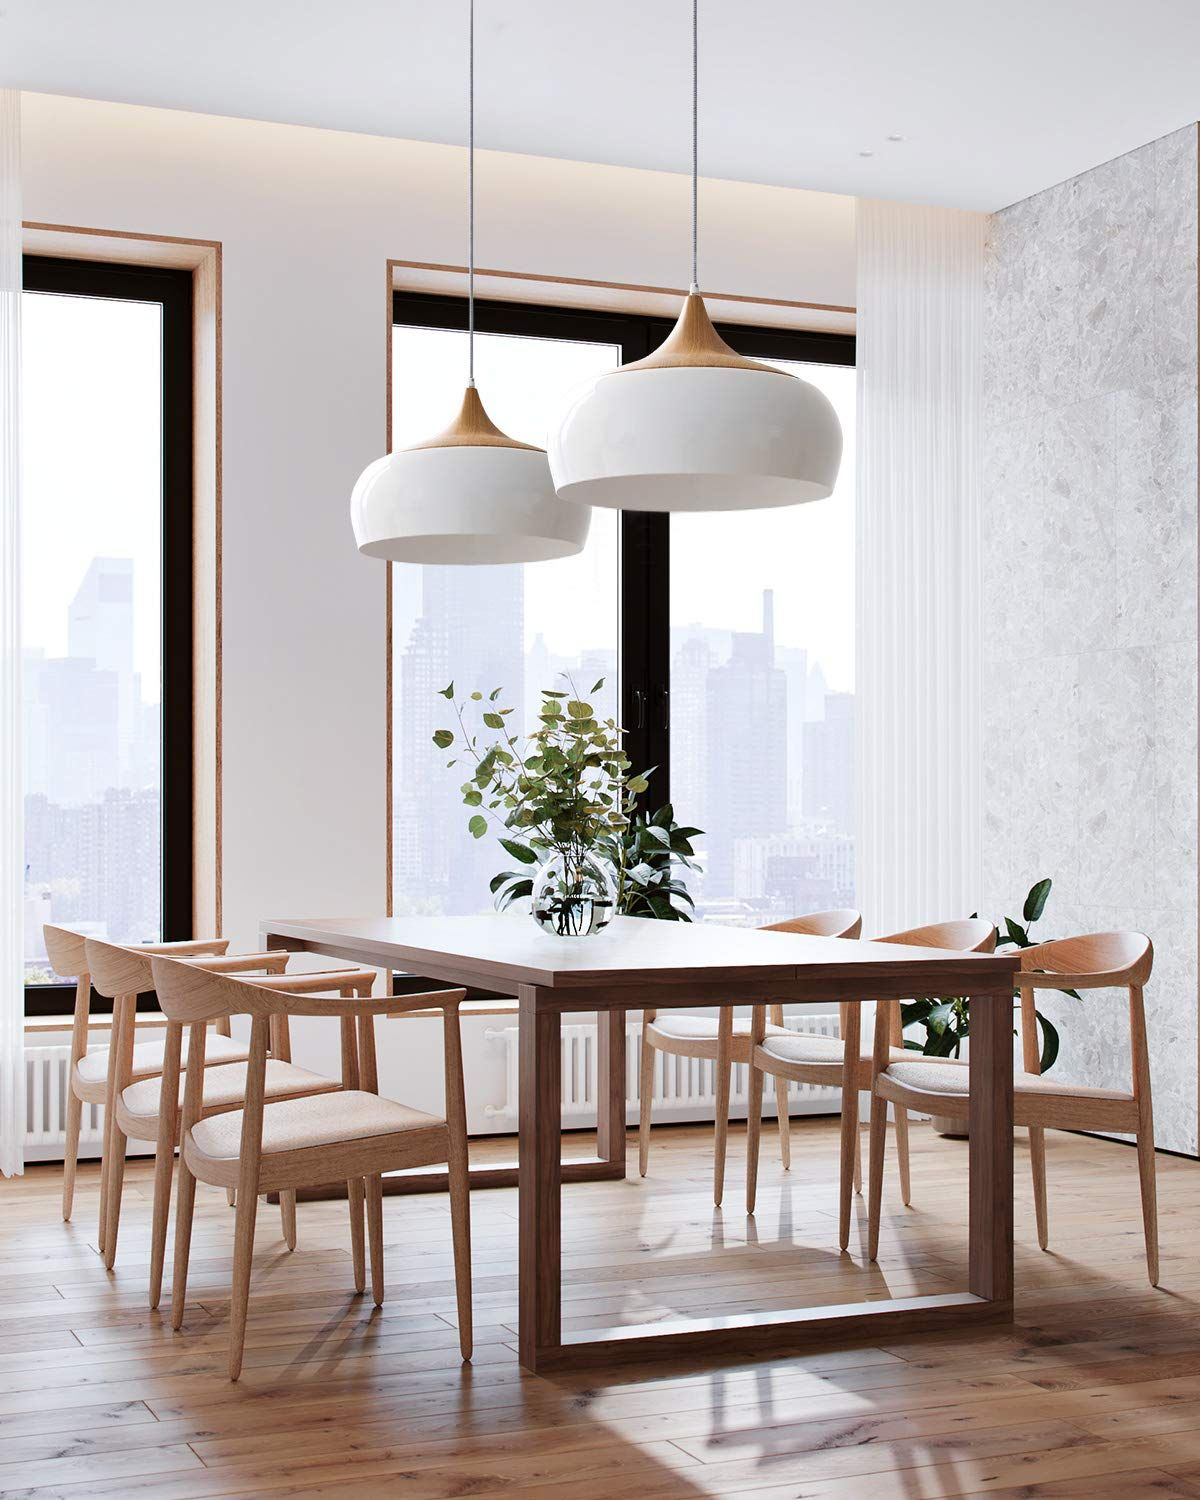 Amazonsmile Tomons Modern Style Wood Pattern Ceiling Lights Pendant Light With 8w Le Dining Room Pendant Ceiling Lamps Living Room Ceiling Lights Living Room